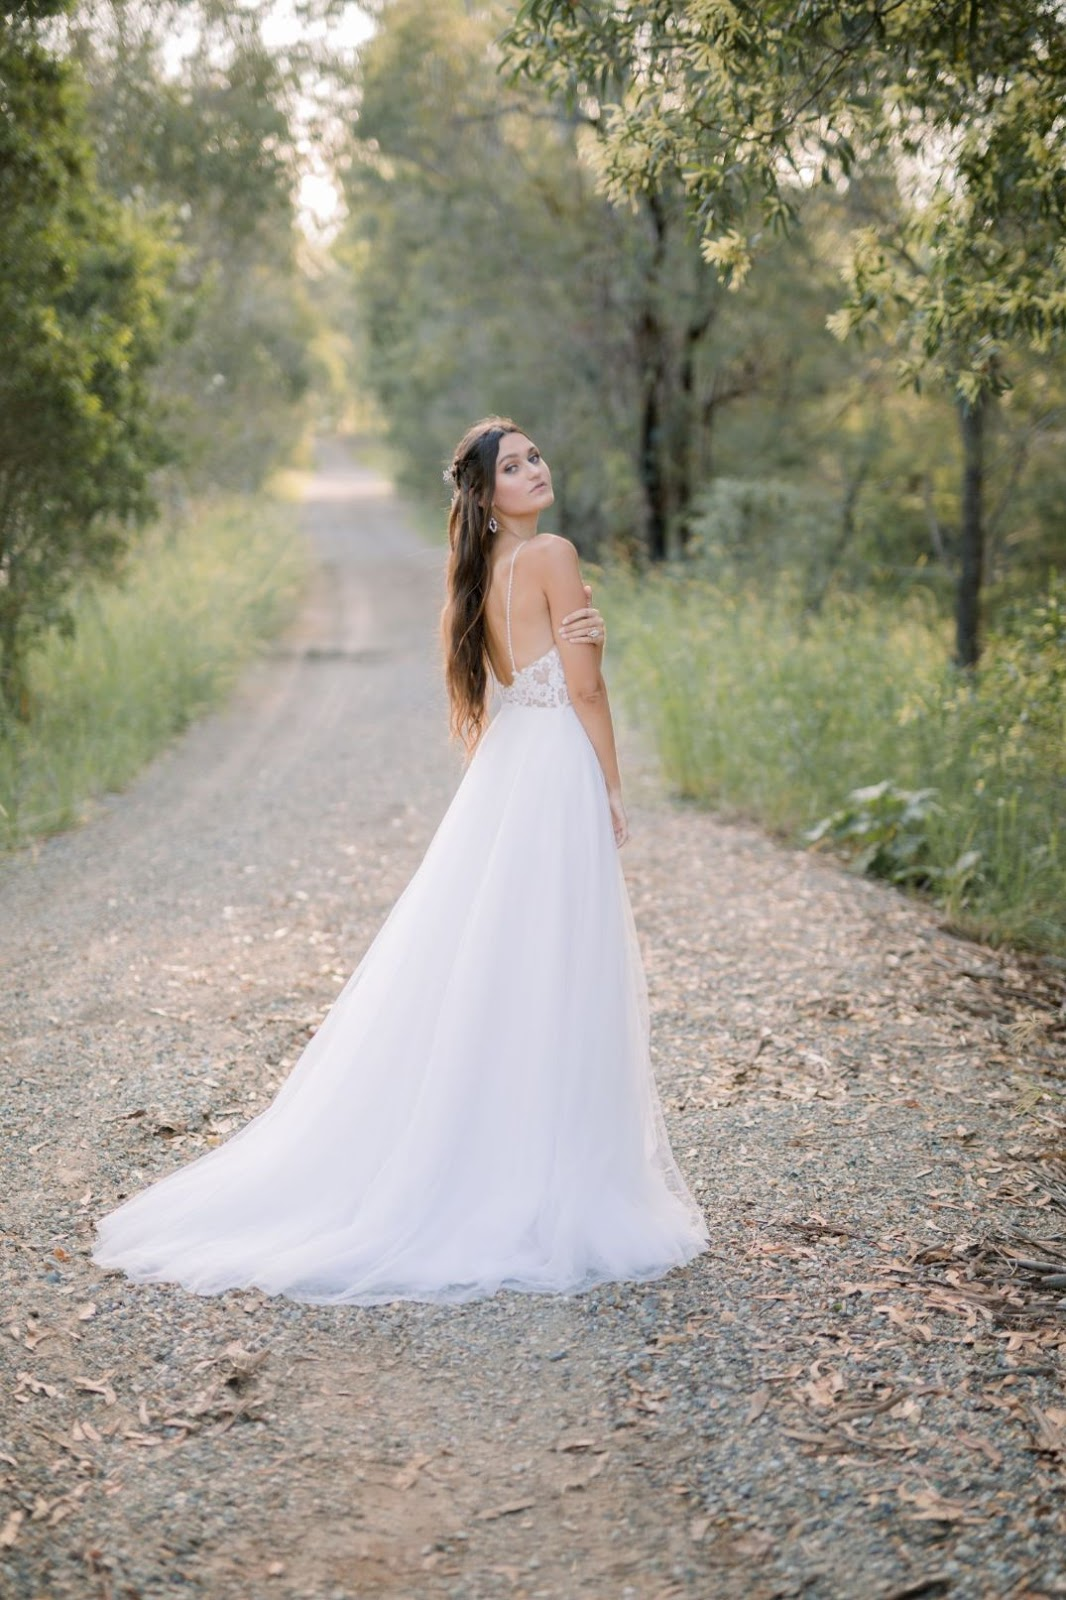 images by wylde folk studio photography weddings dresses gowns bridal fashion bohemian wedding dress